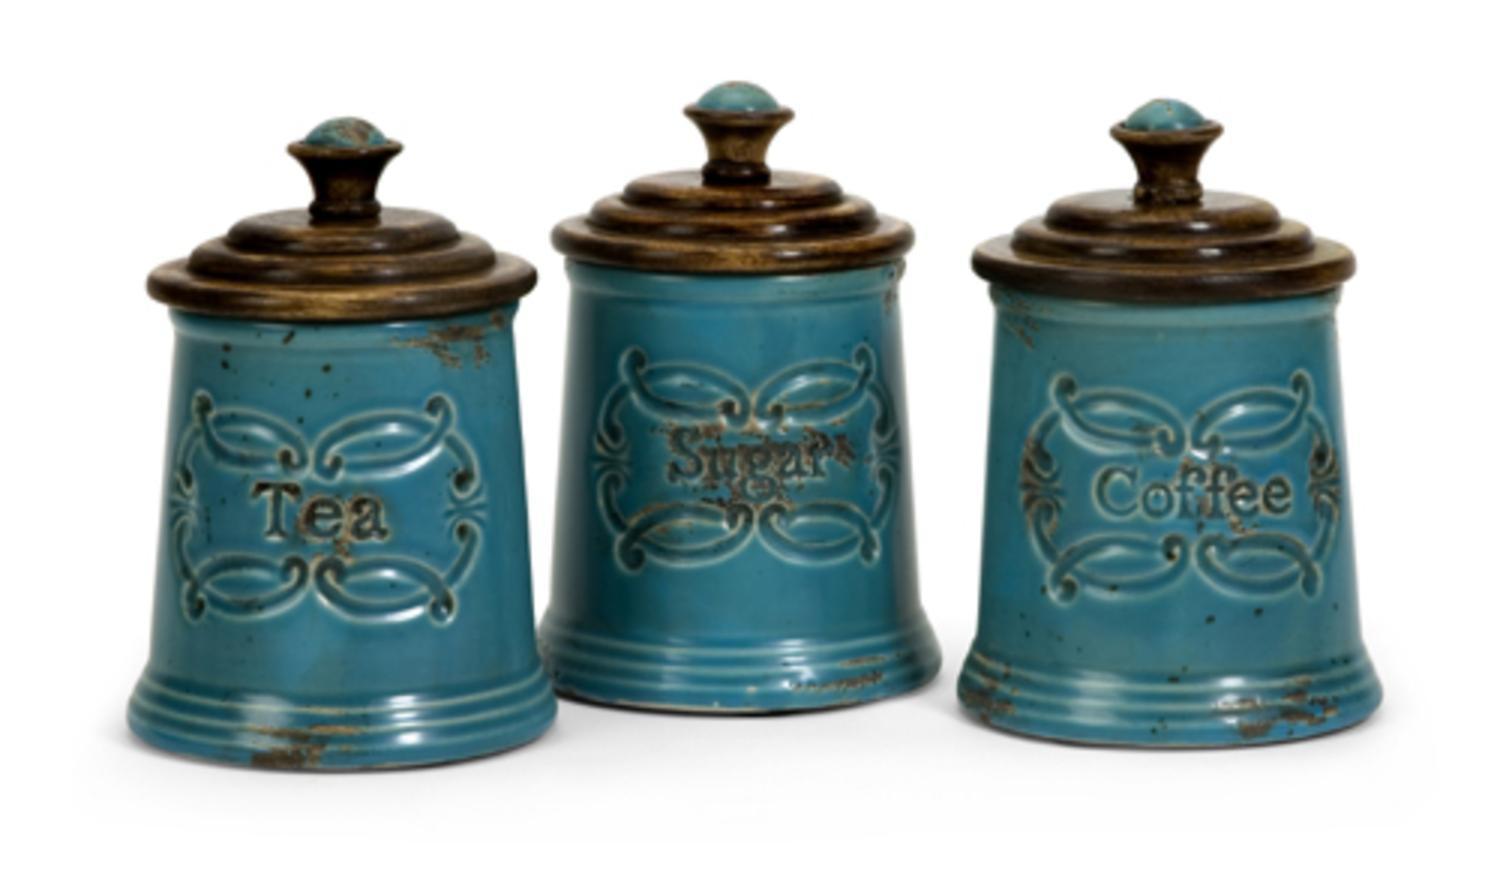 Set of 3 Sugar Tea Coffee Distressed Country Canisters - Walmart.com